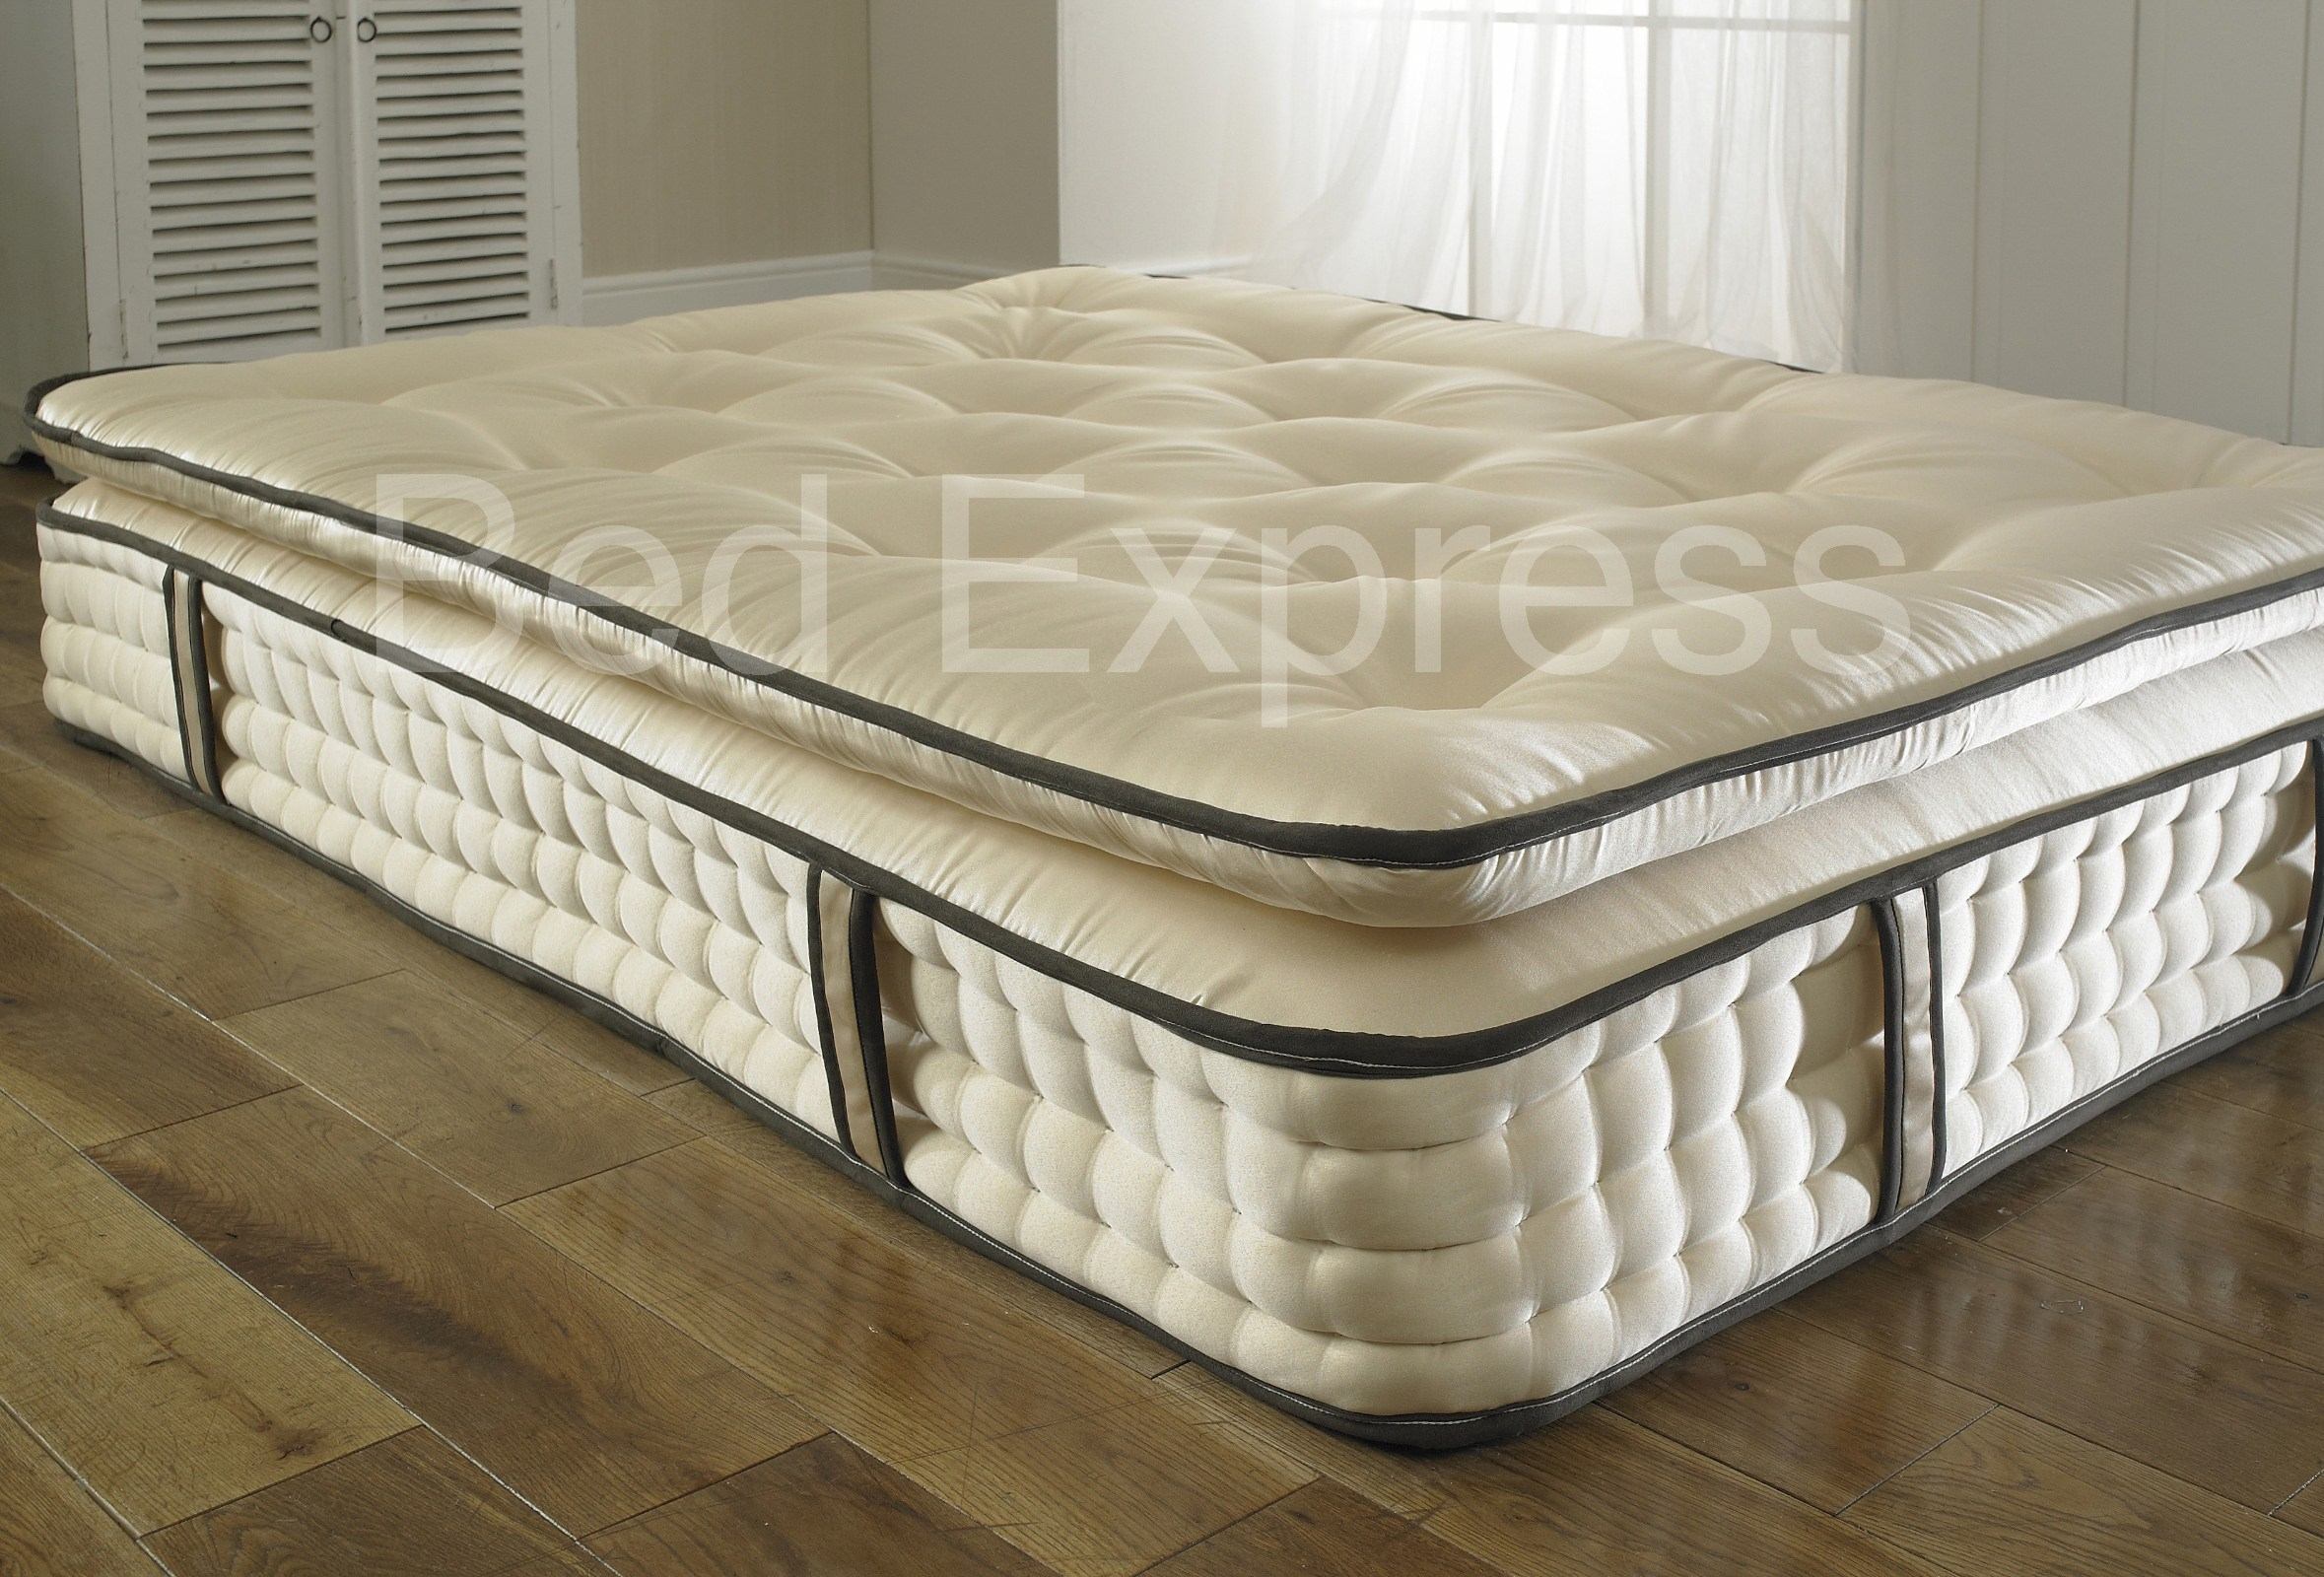 5ft king size 2000 pocket spring orthopaedic organic pillow top mattress ebay Mattress king